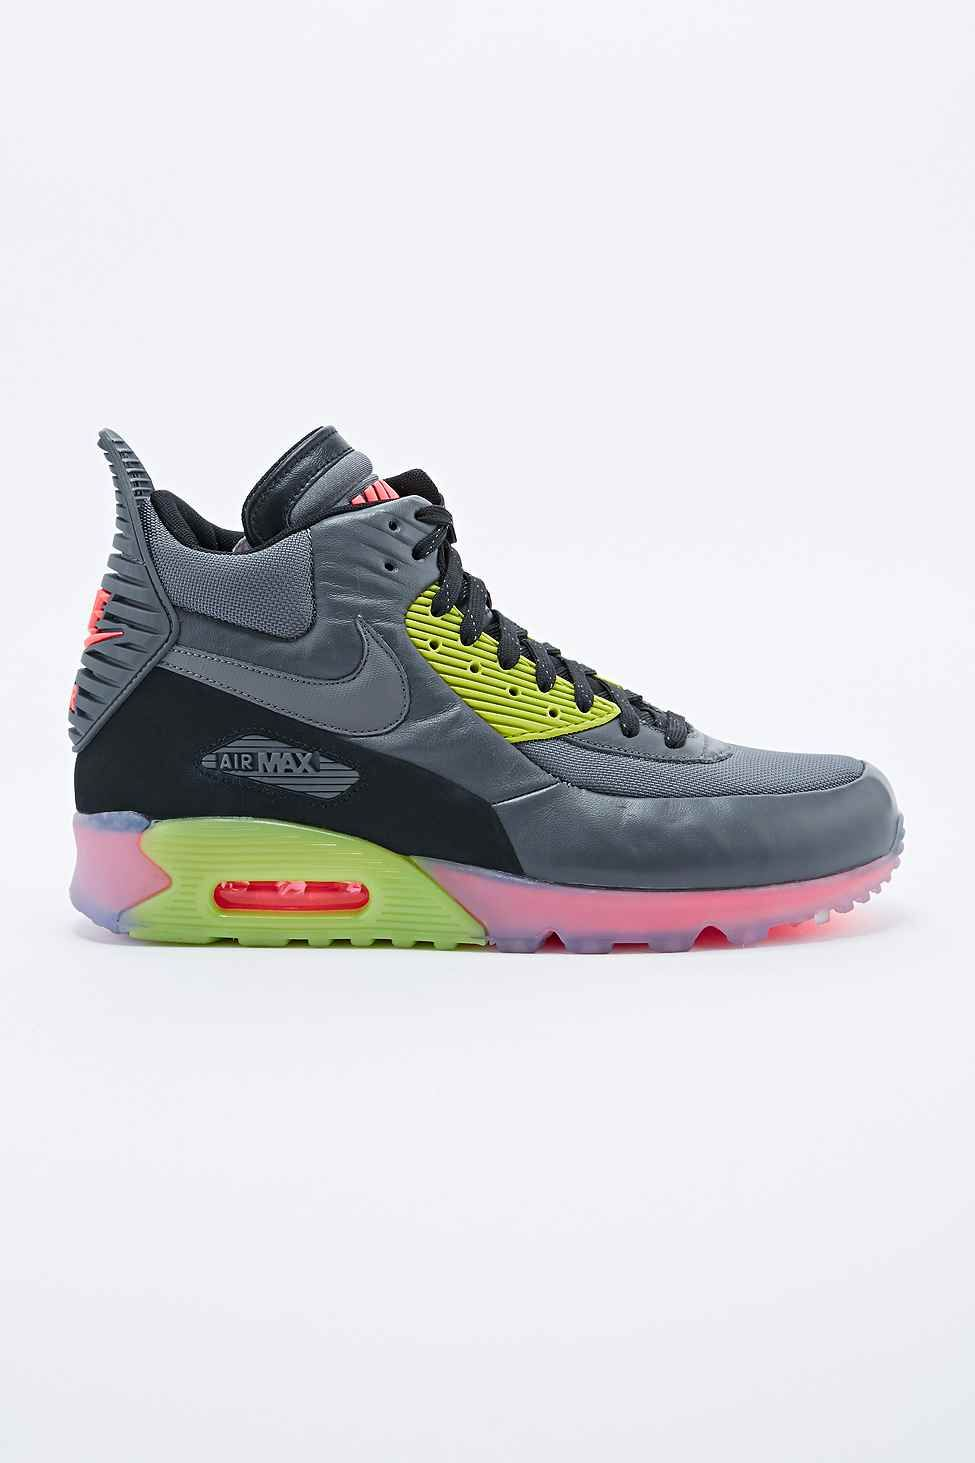 Nike Air Max 90 Trainer Boots in Grey | Basket air max, Nike